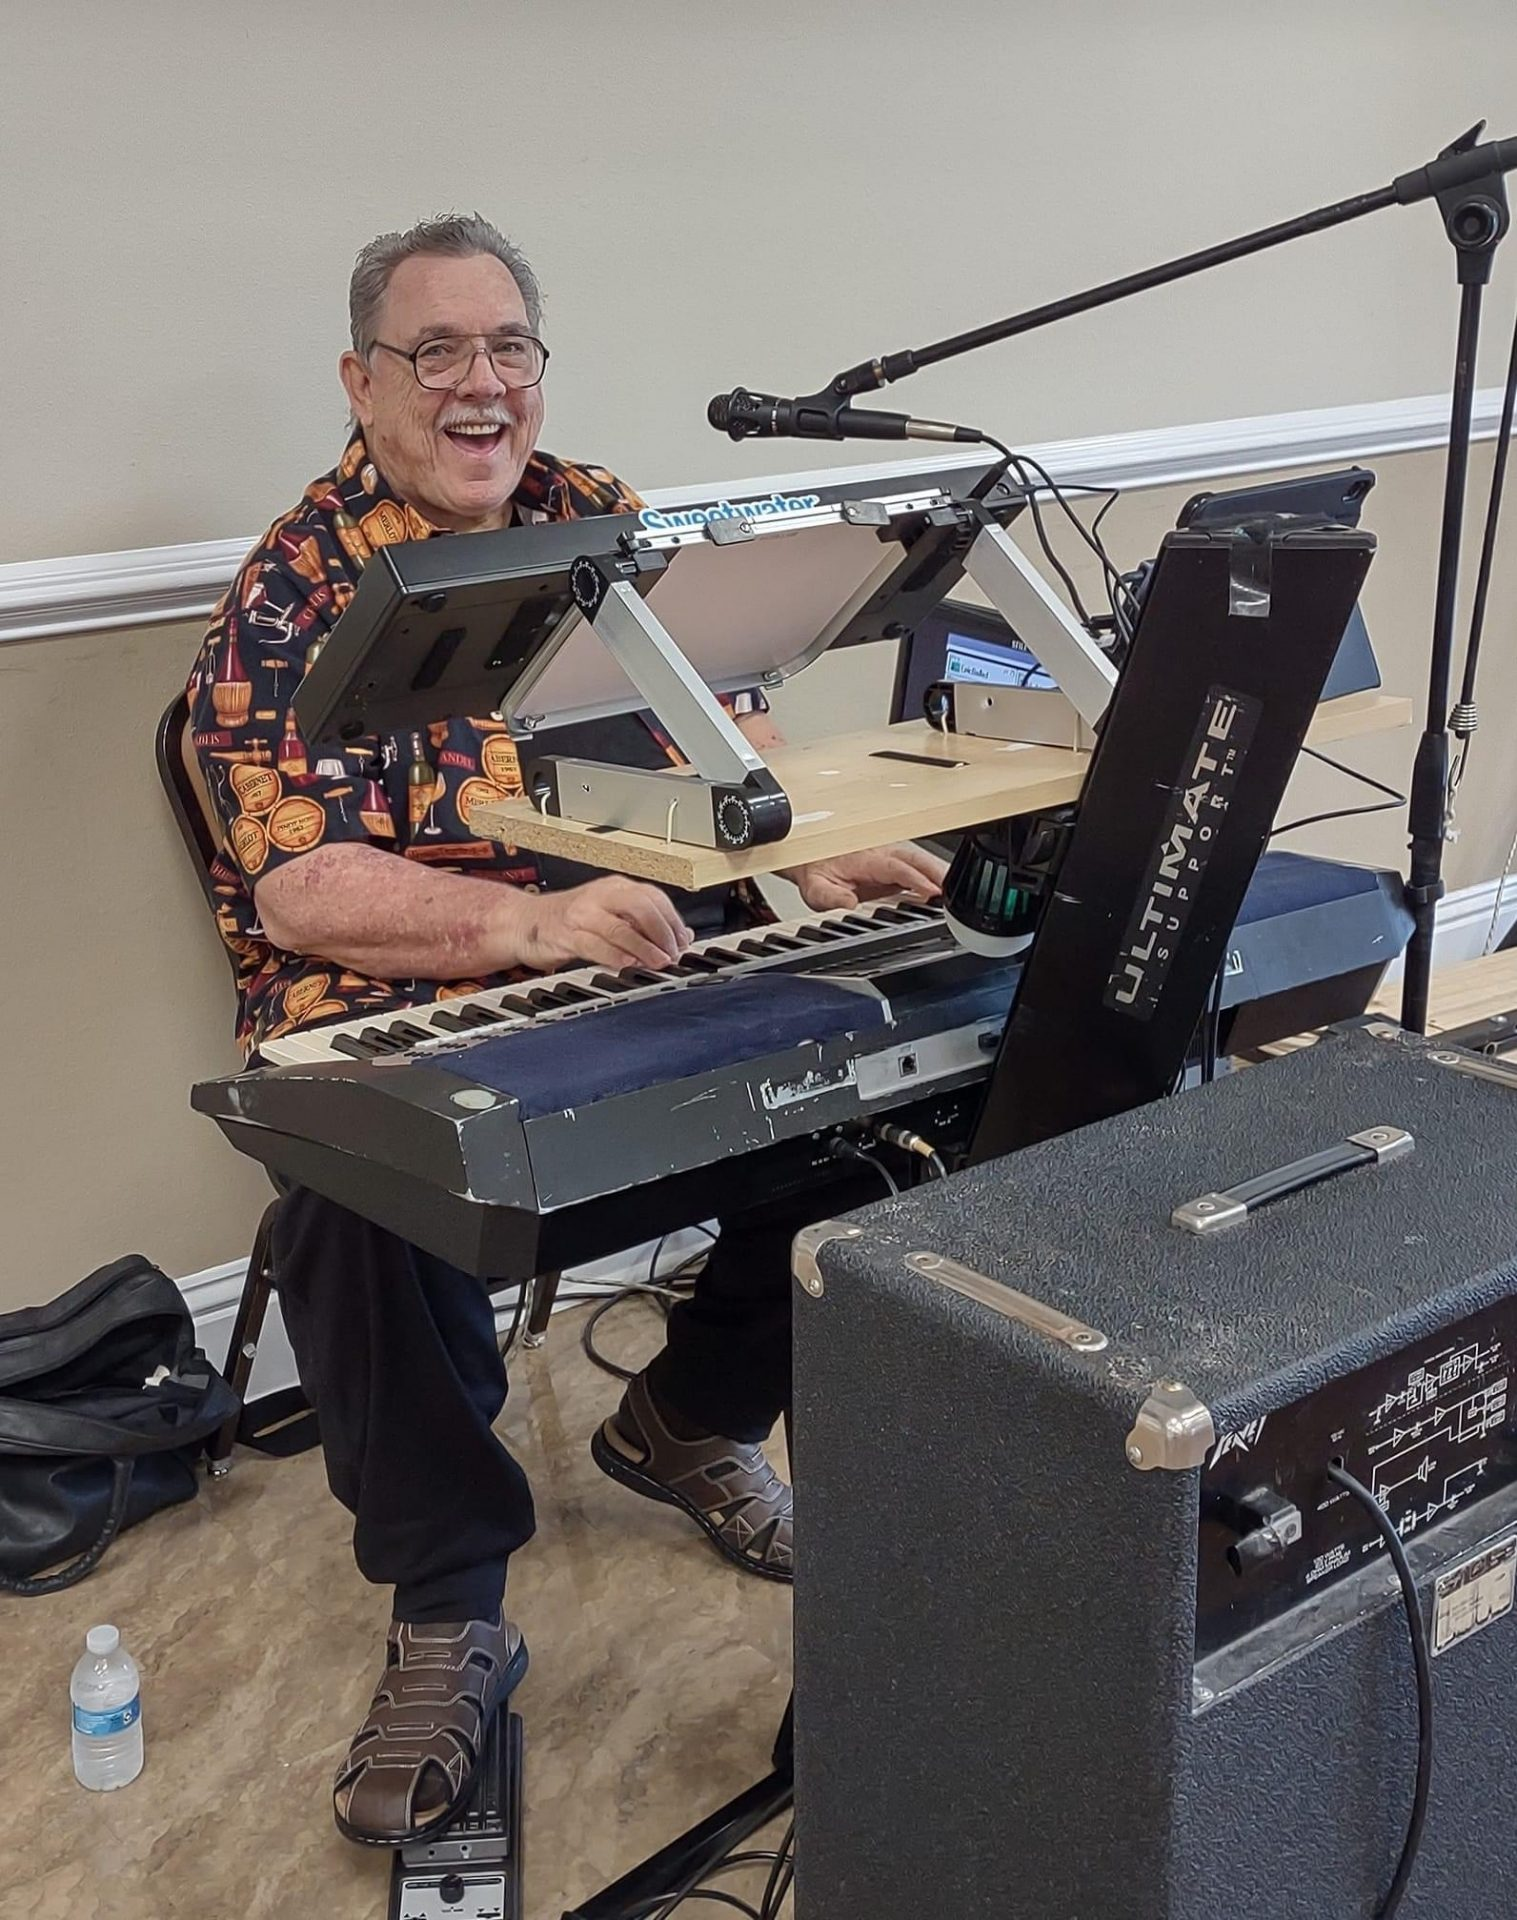 My last picture of Frank, he was in his happy place, playing music.<br /> You will be missed, love you!